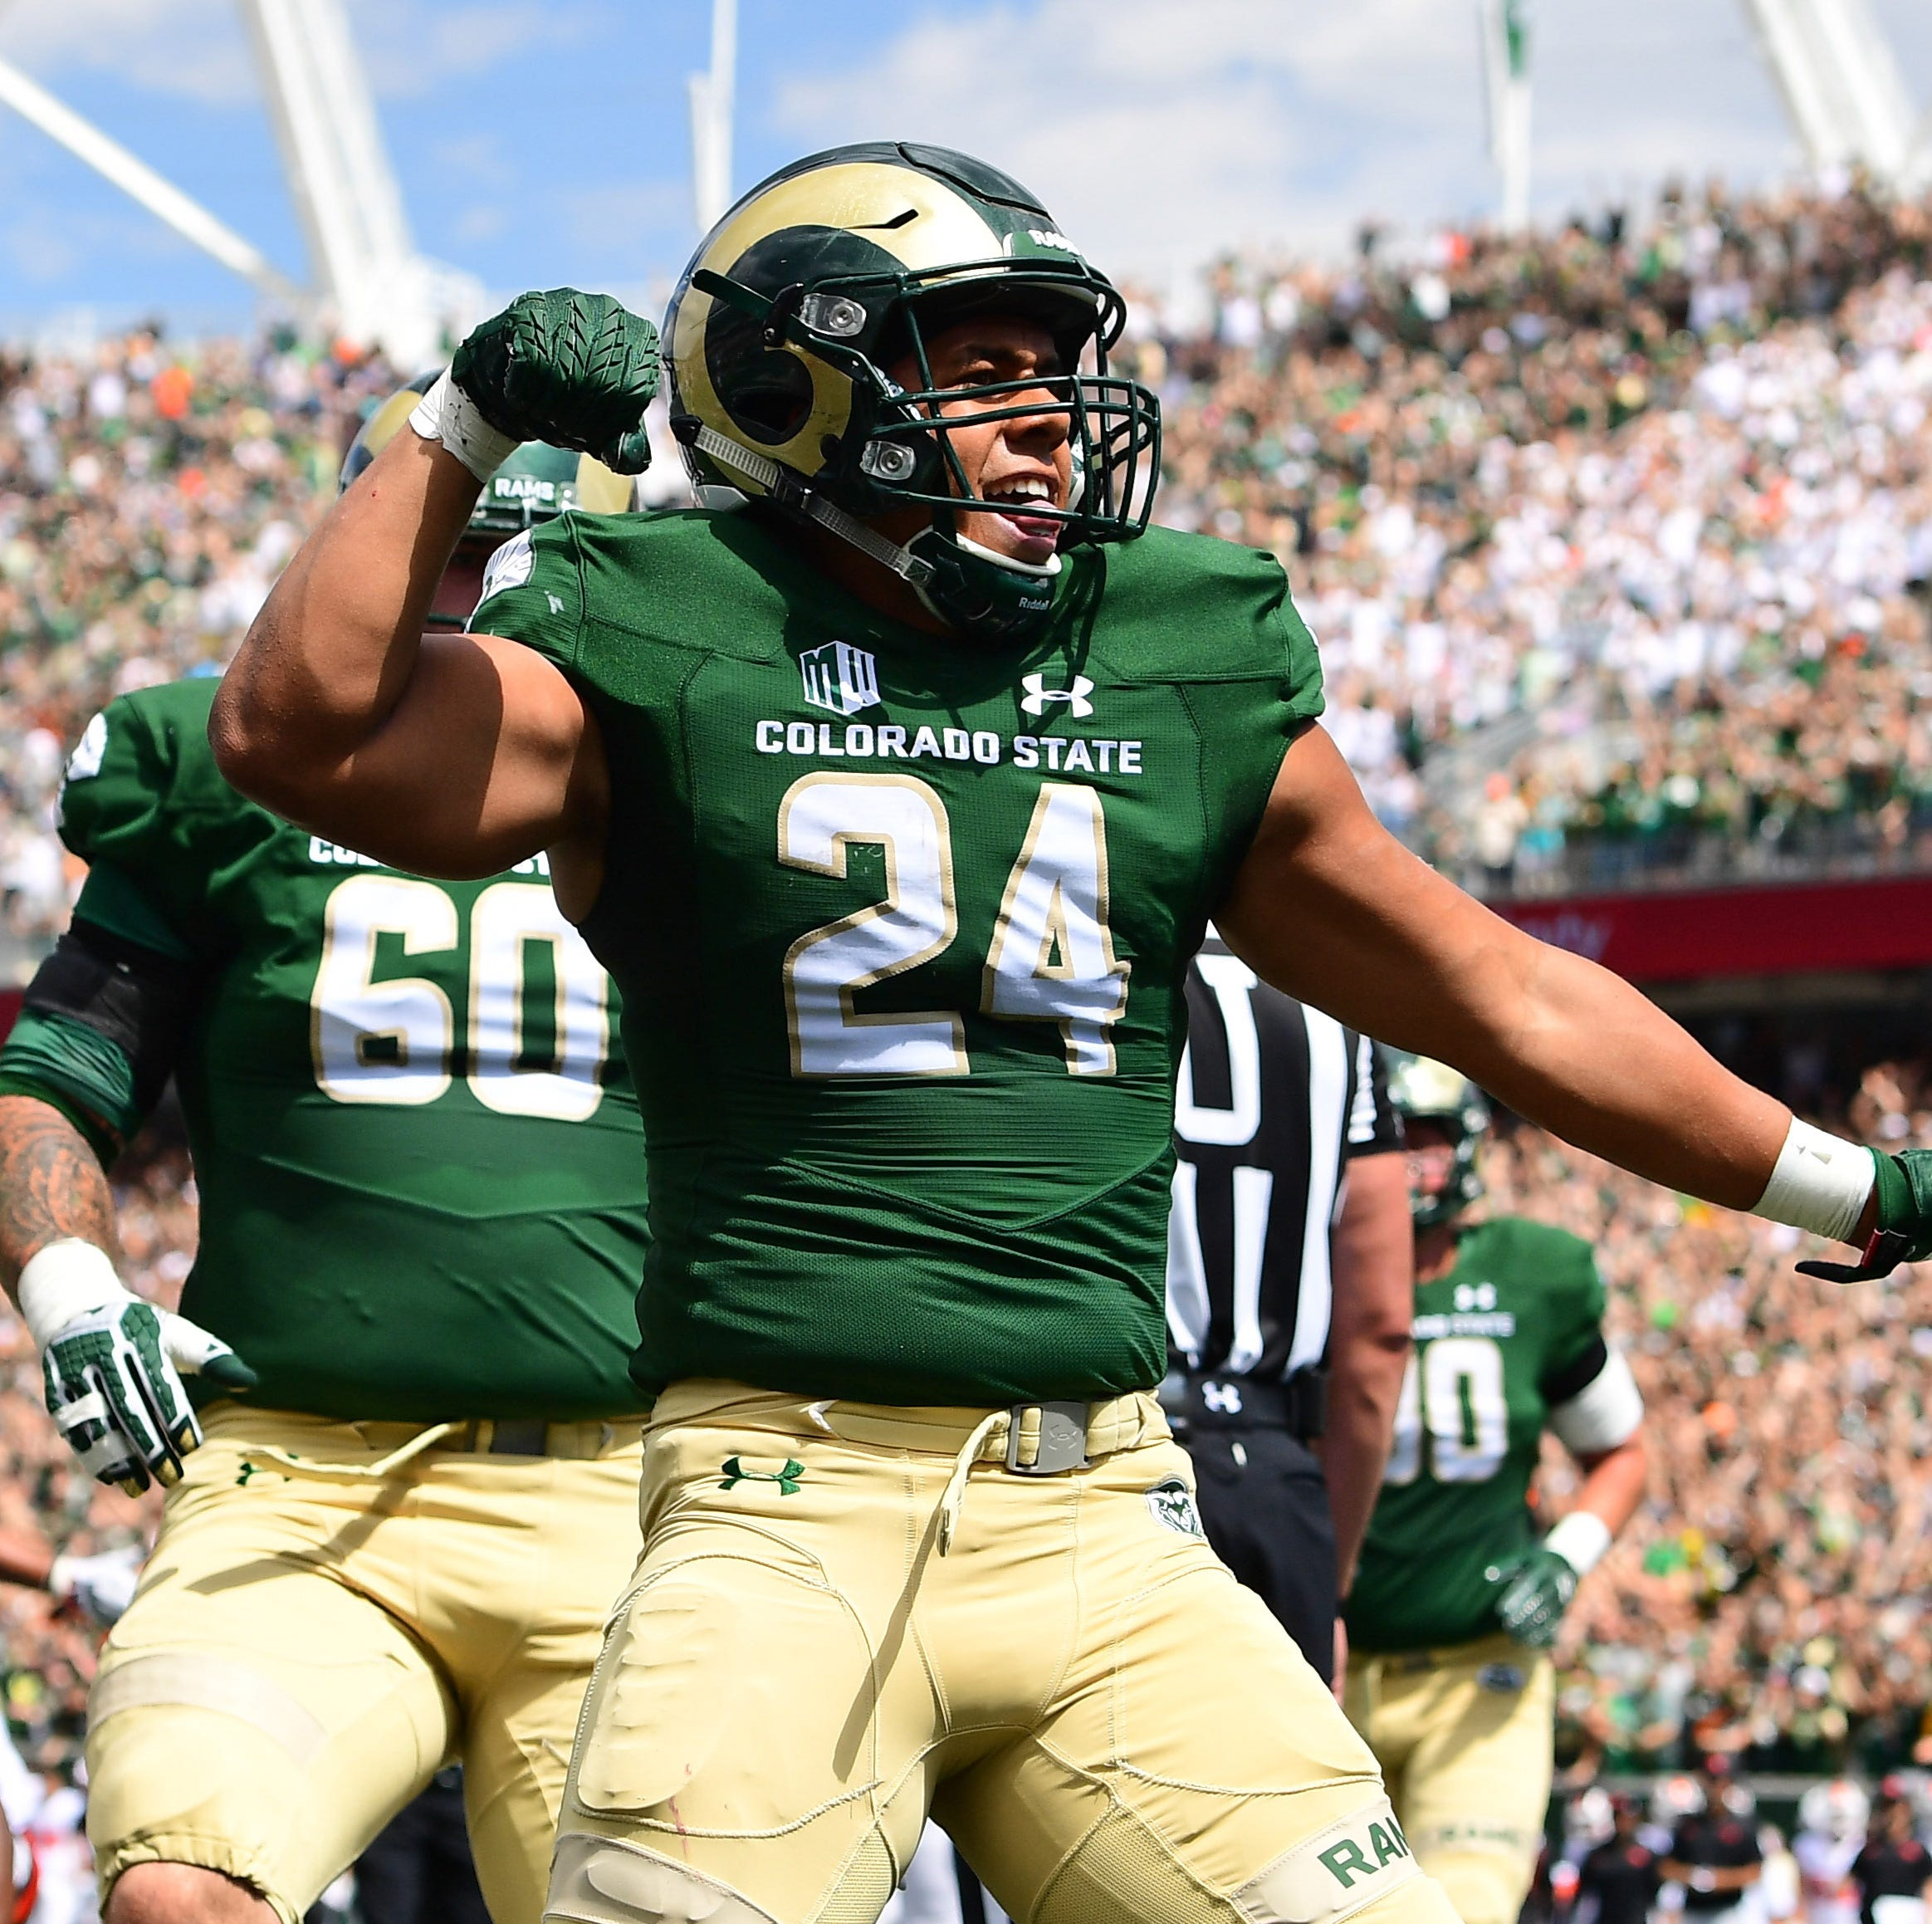 AT&T-Rocky Mountain to televise 3 CSU football home games this fall